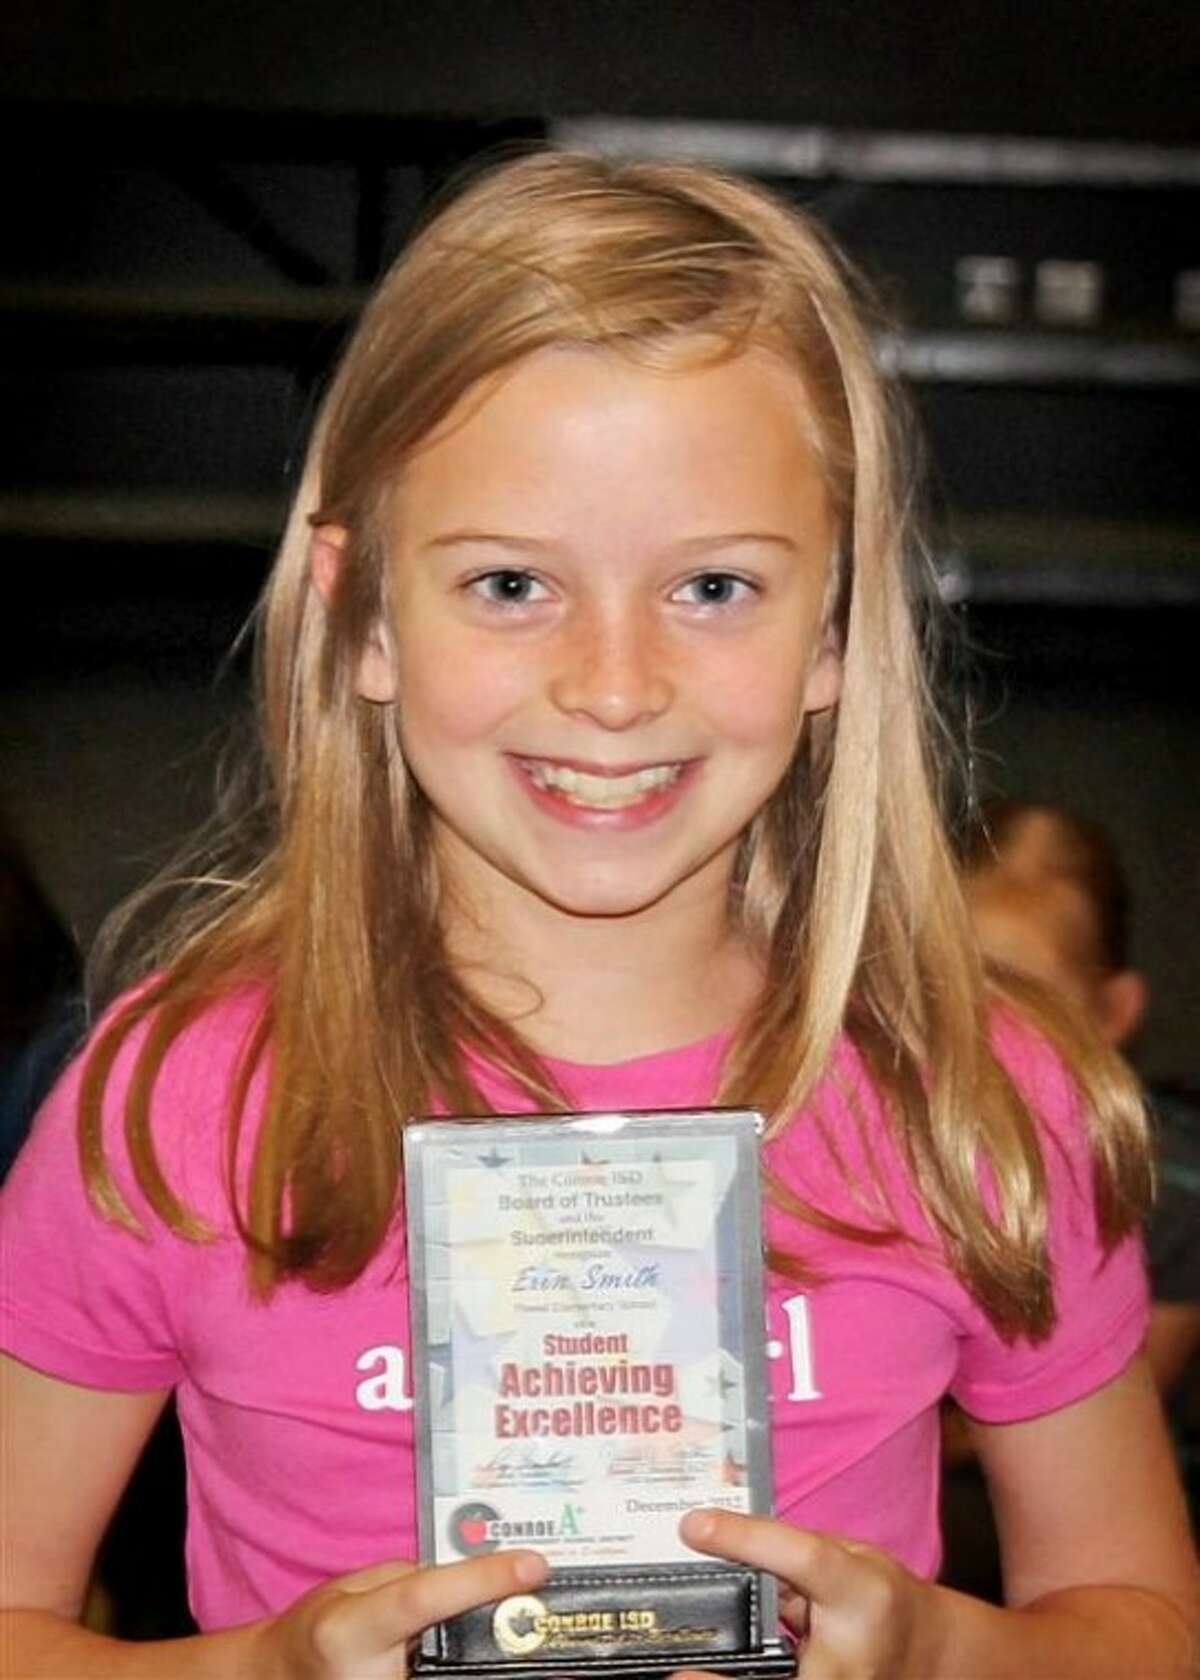 Erin Smith was recently recognized as the Student Ambassador for Powell Elementary.